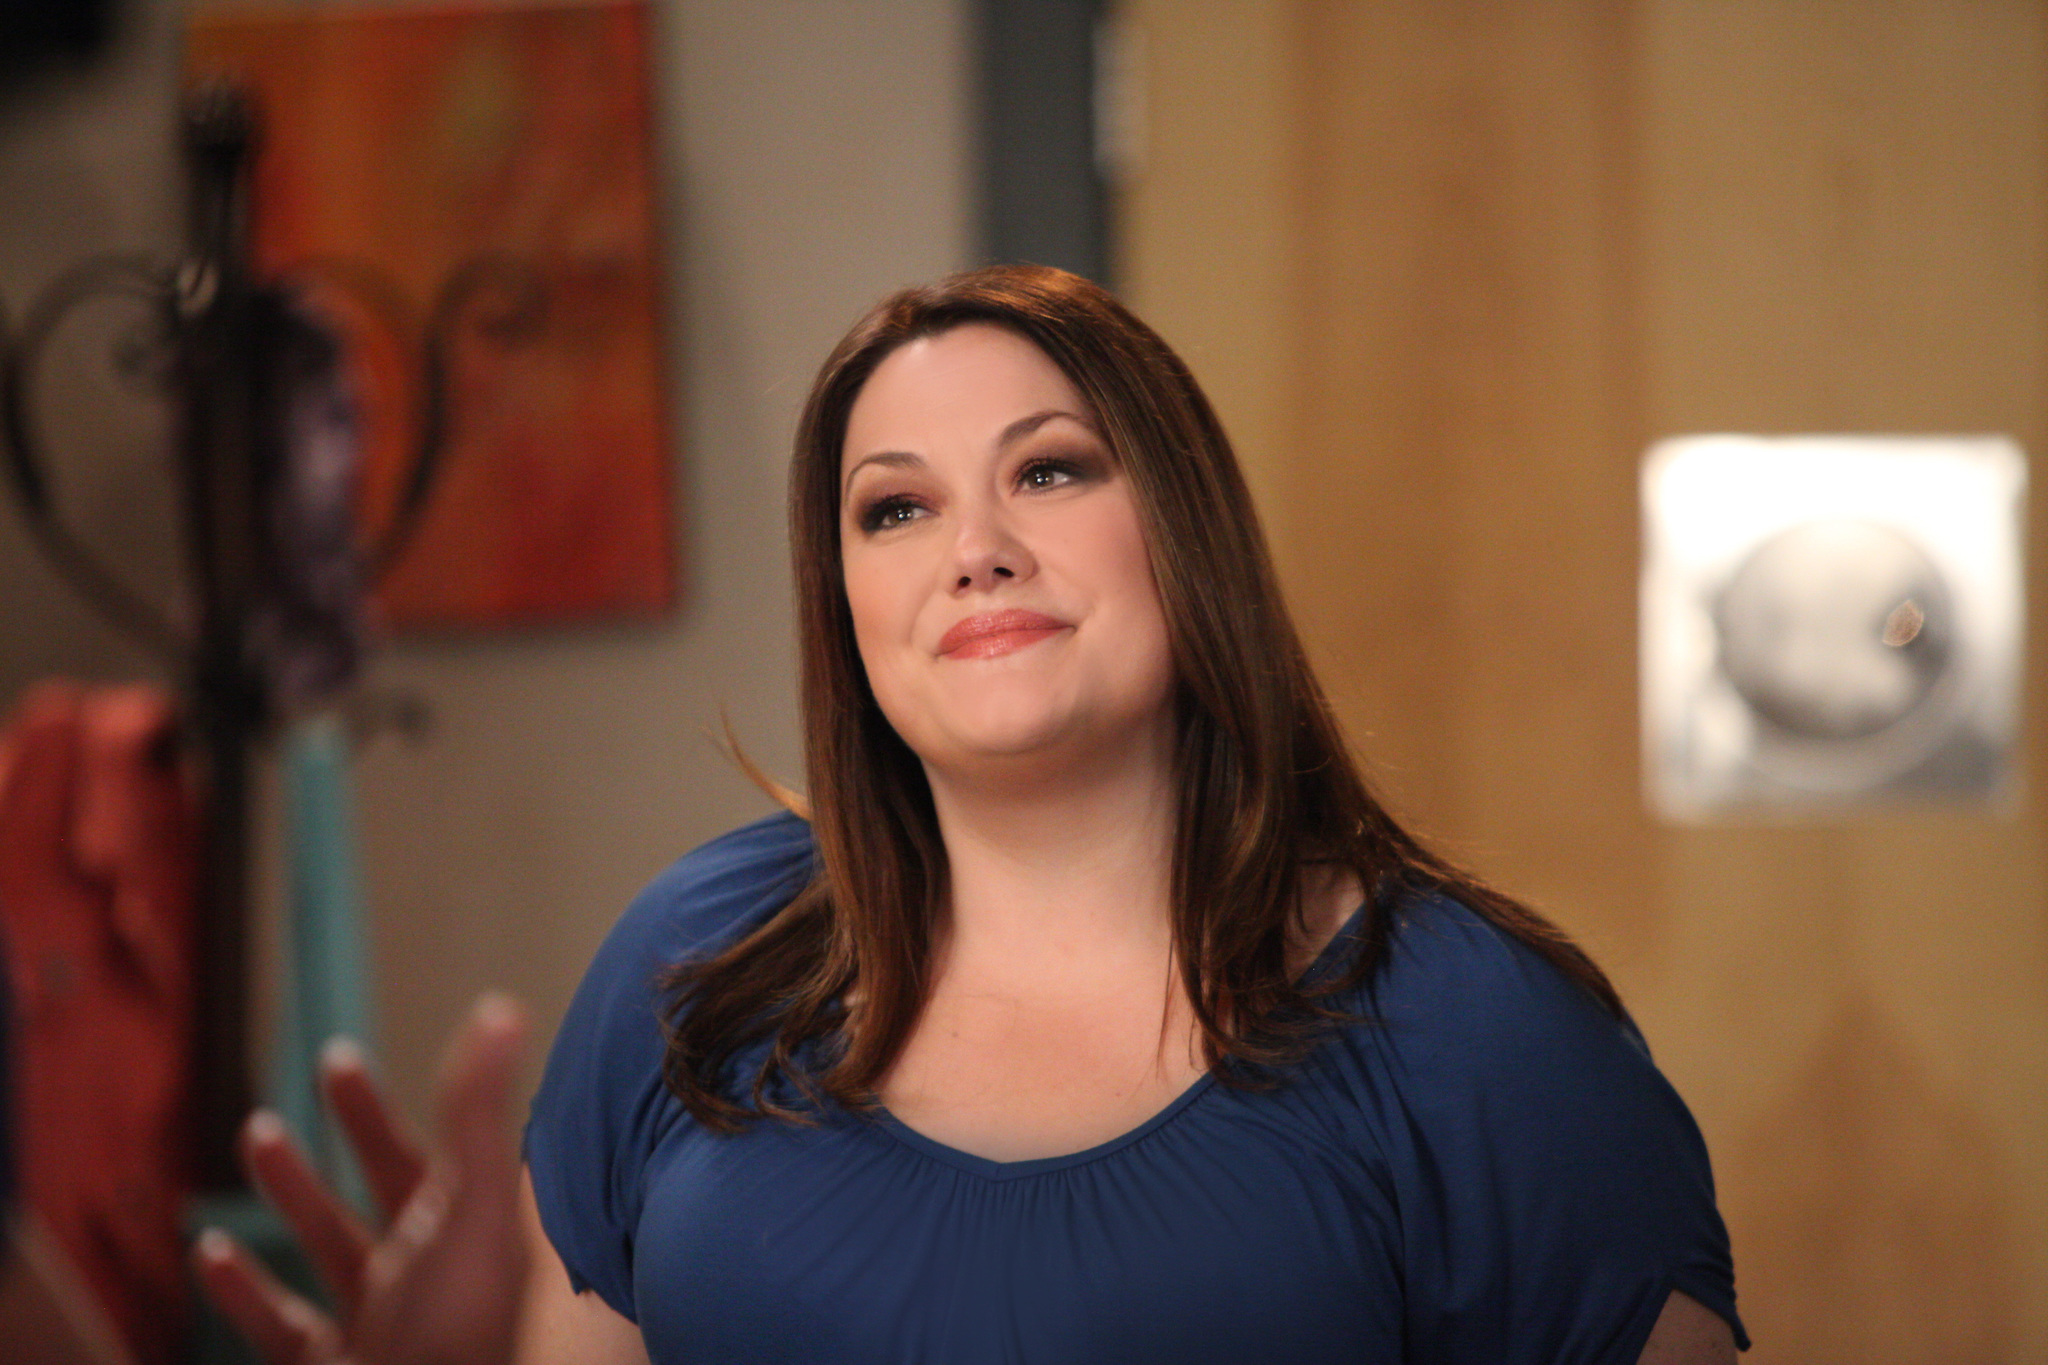 Drop dead diva back from the dead tv episode 2013 imdbpro - Drop dead diva season 5 episode 4 ...